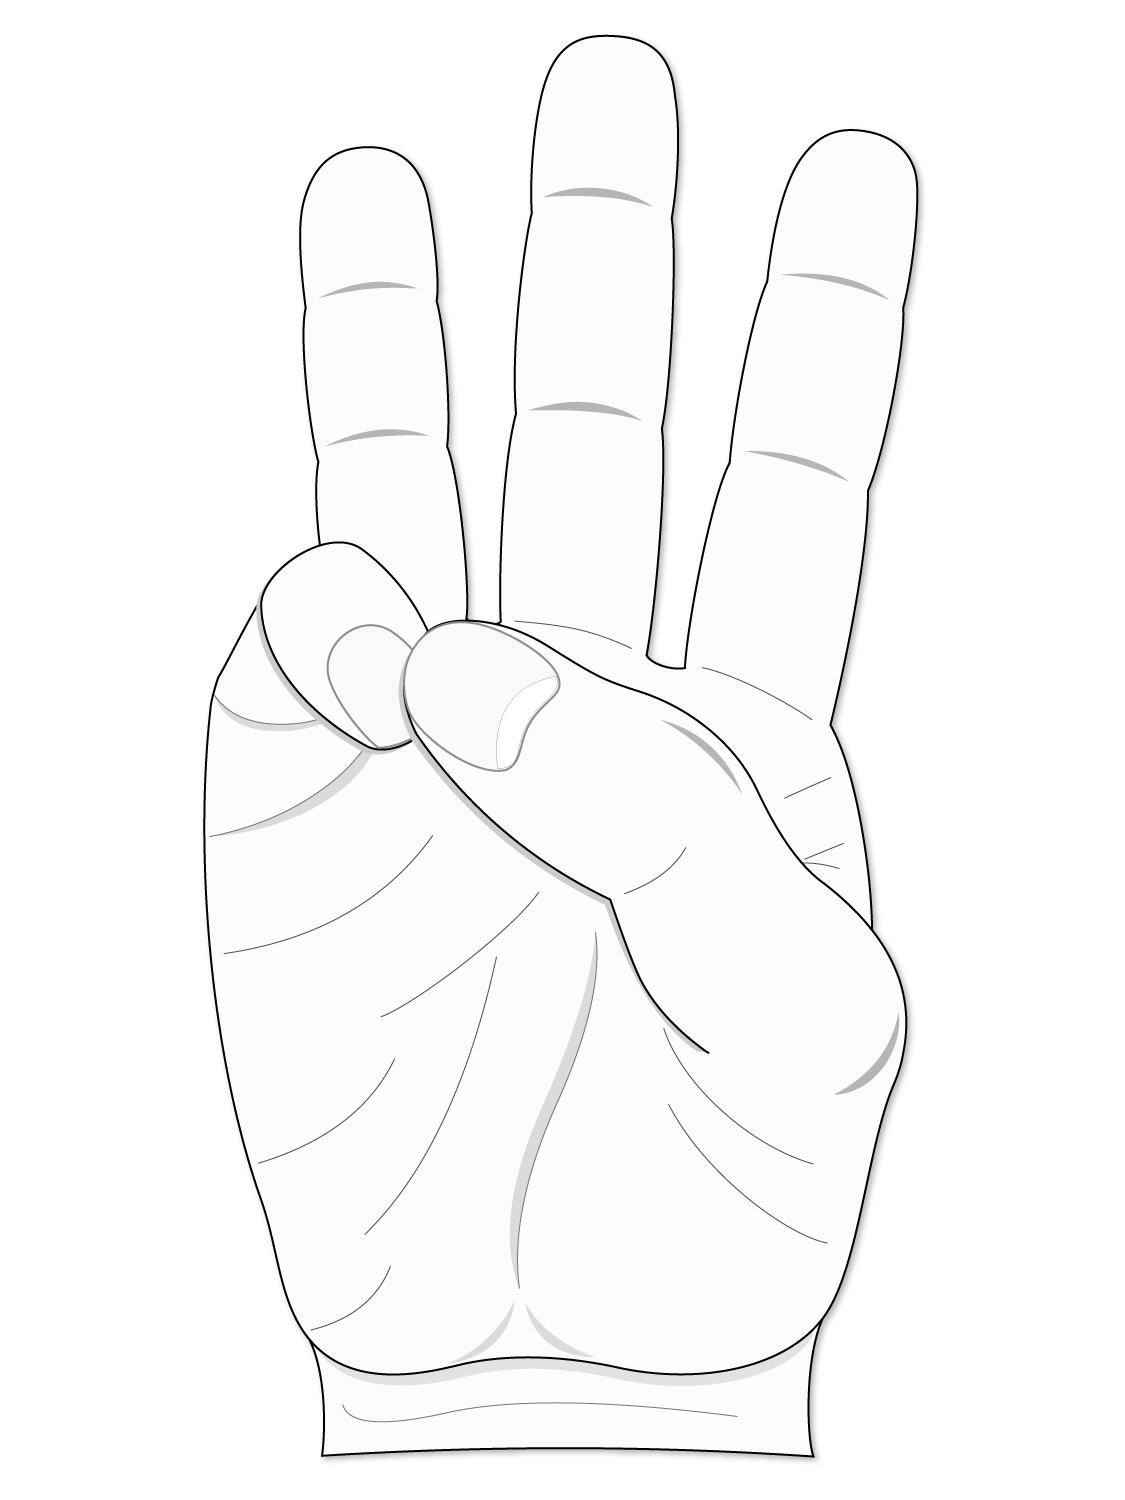 Function: thumb opposition.